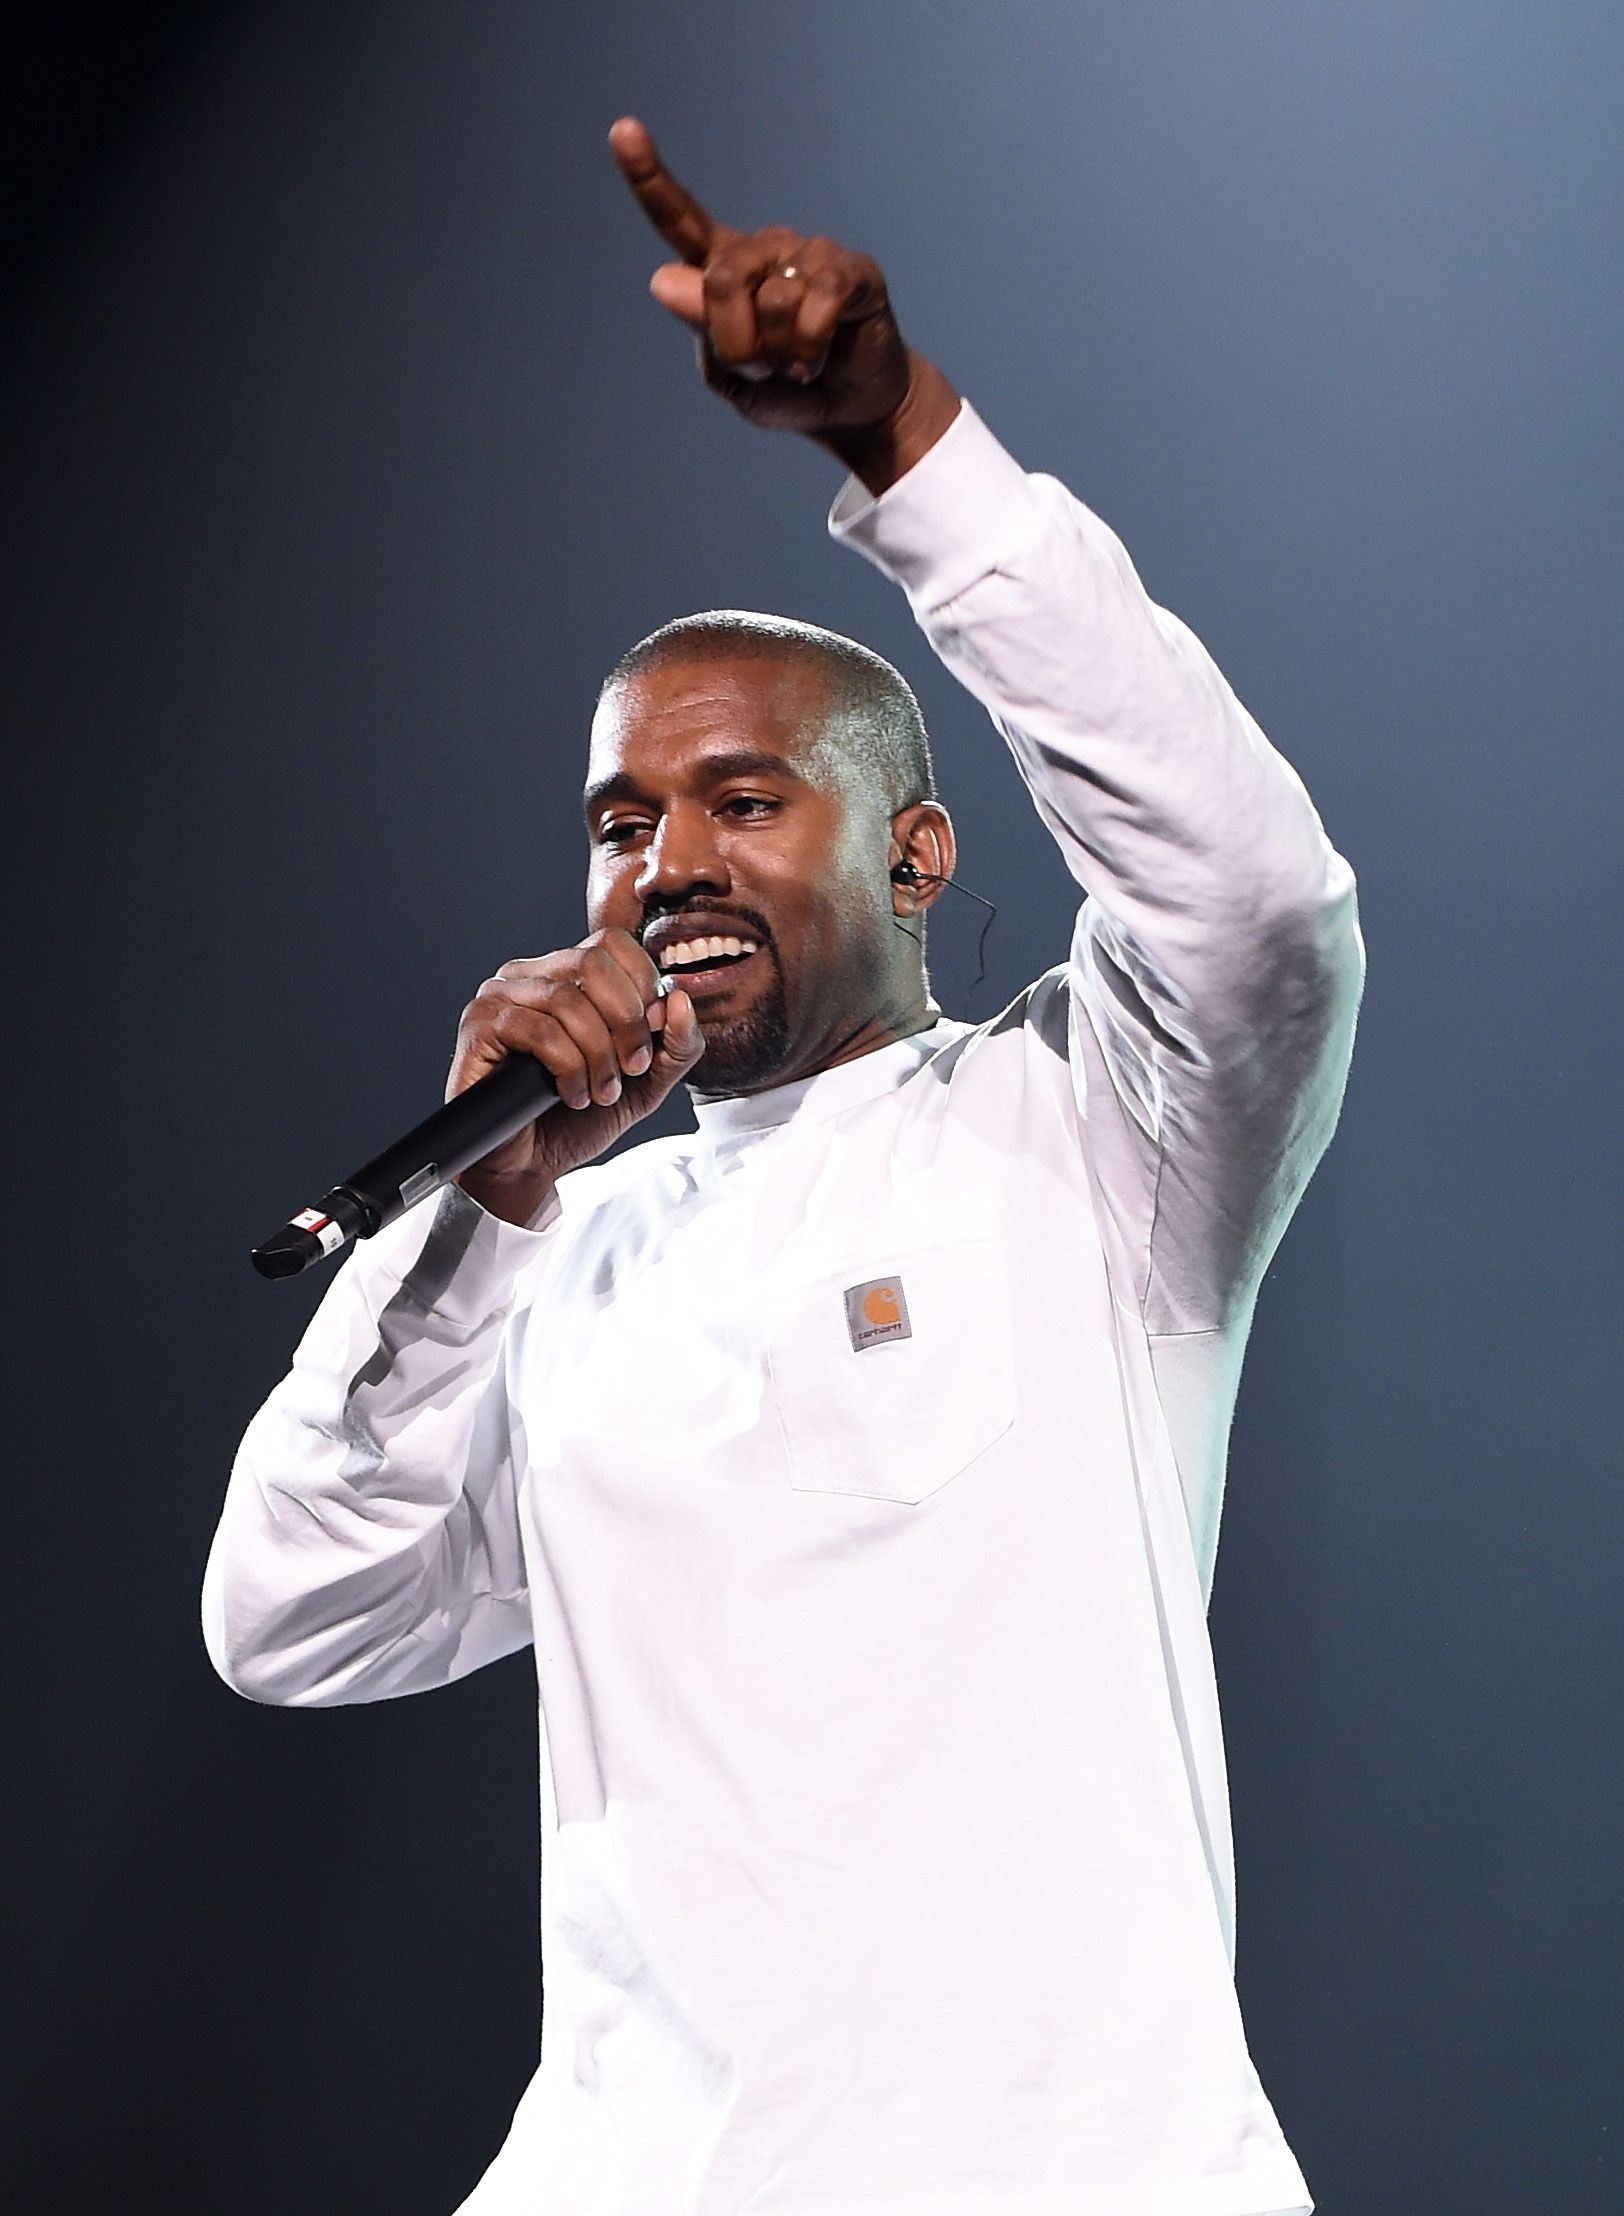 Here's why Kanye West didn't show up to the 2019 Grammys